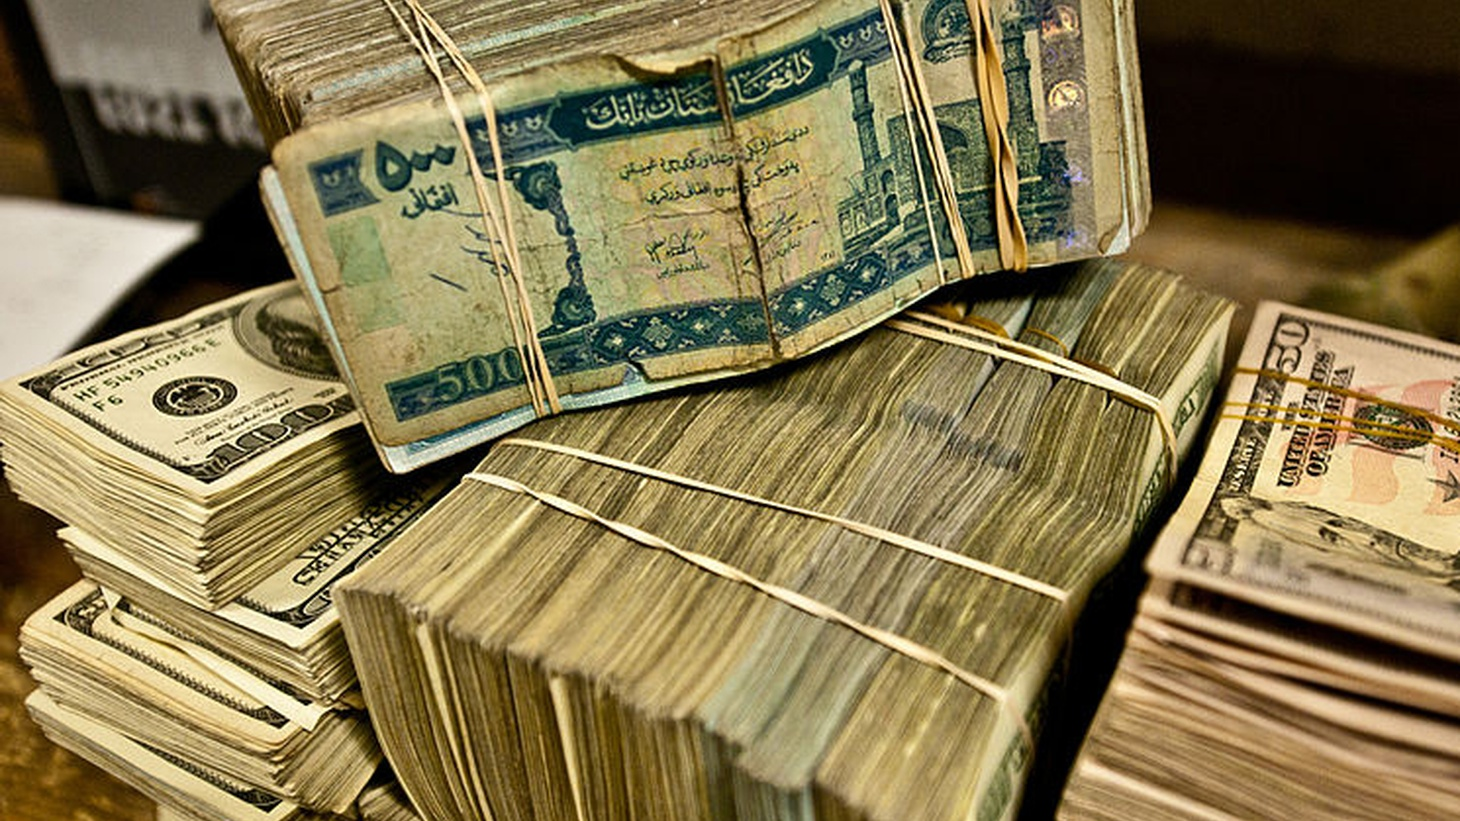 """From Iceland to Beijing to Moscow, government leaders have tried to shrug off embarrassment from the so-called """"Panama Papers."""" We hear how the United States is deeply involved in a worldwide web of tax havens for hiding trillions of dollars."""